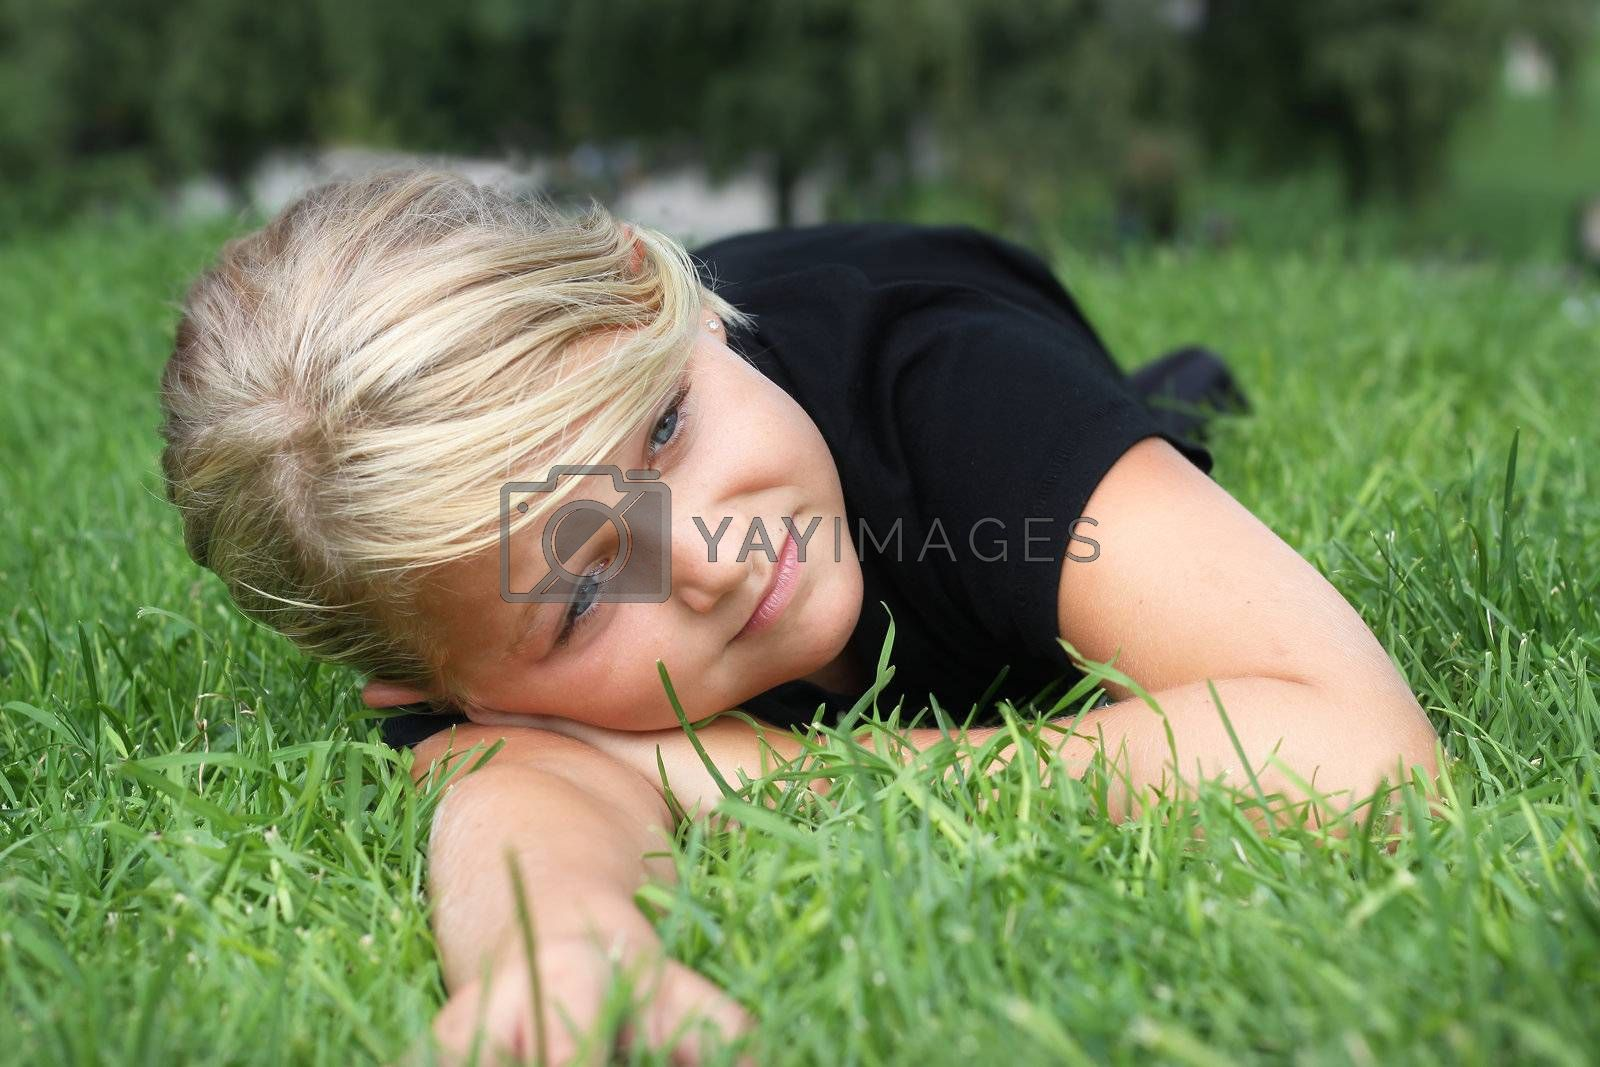 A young girl relaxing on green grass